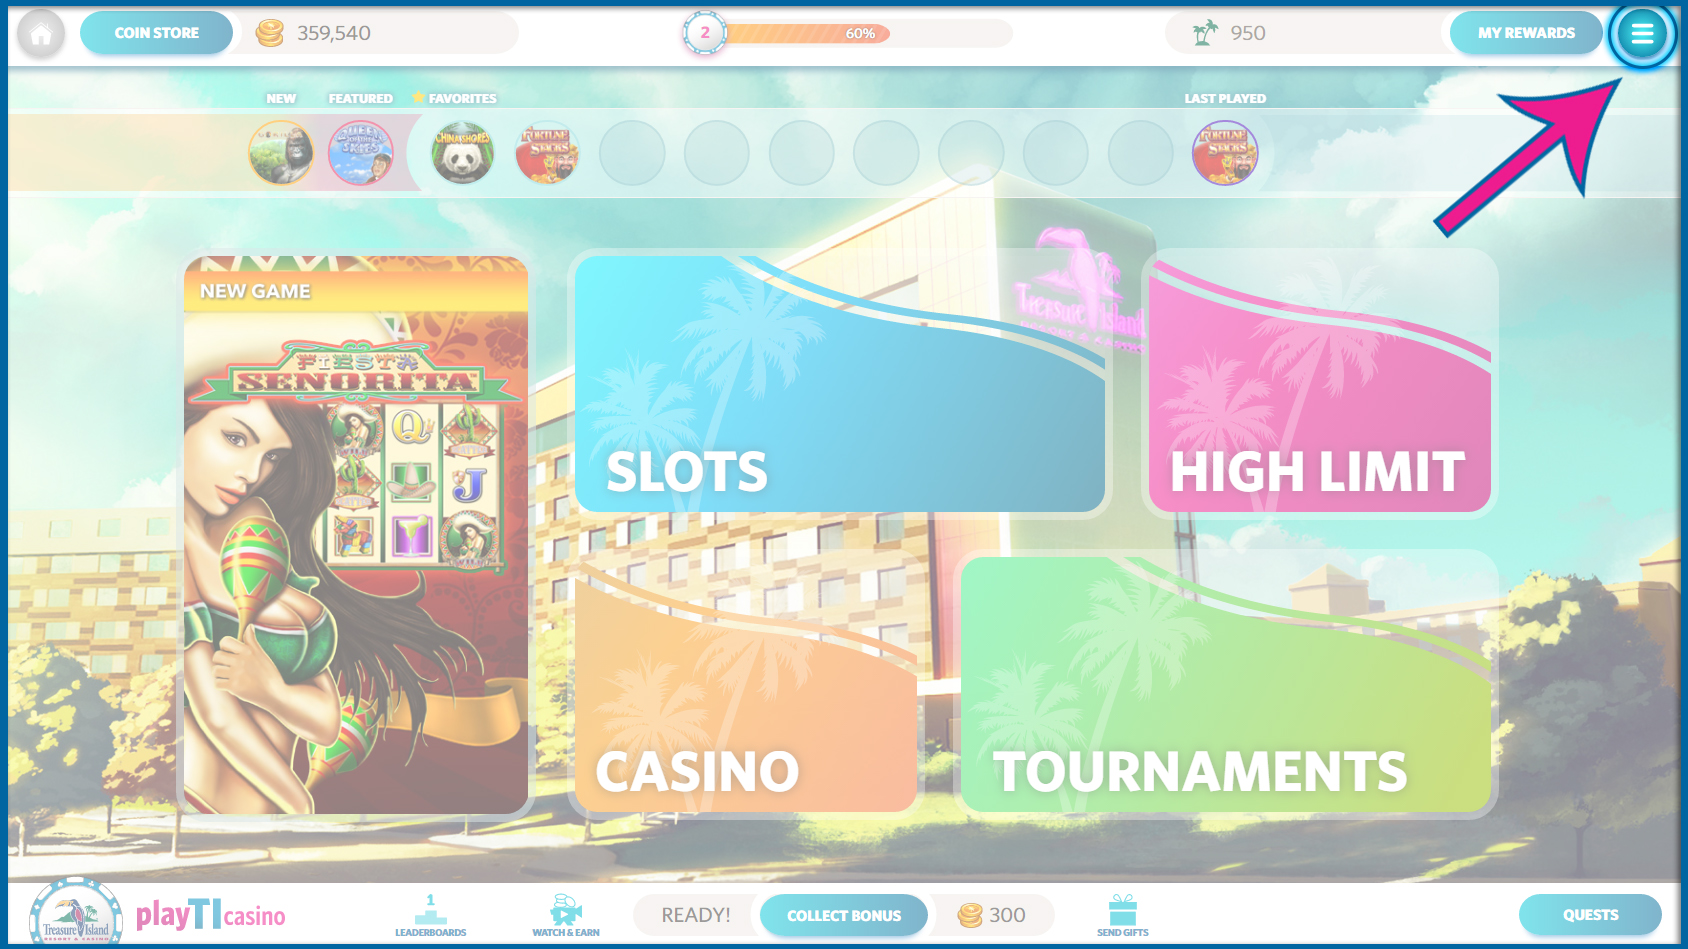 How to Redeem a Free Promo Code – PlayTICasino Help Center